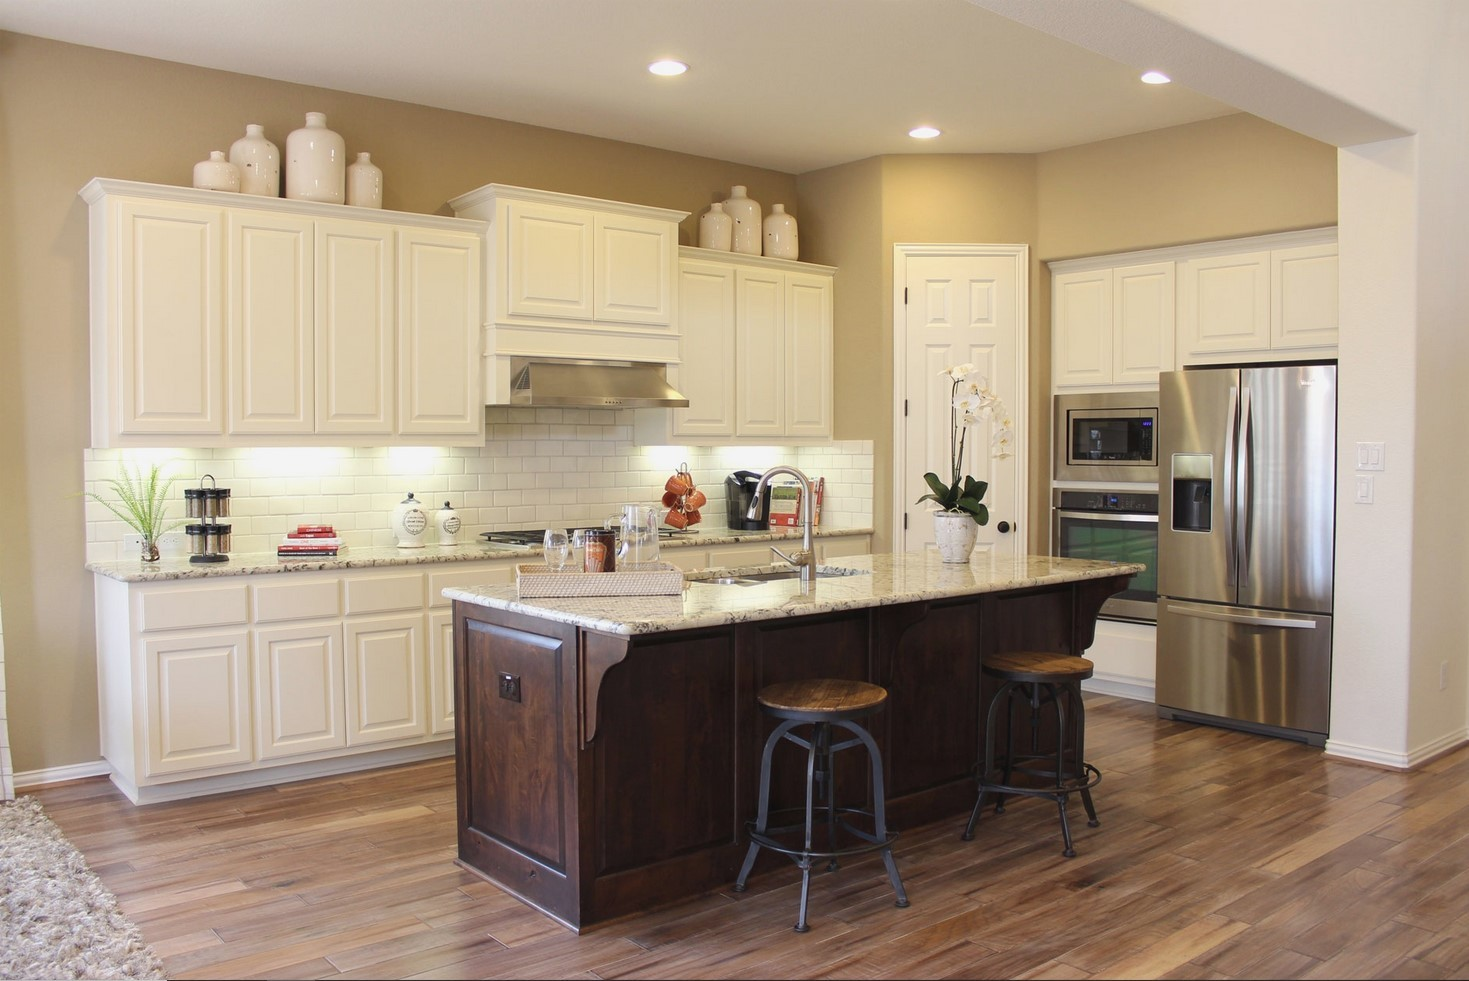 Kitchen Cabinets Countertops And Flooring Combinations